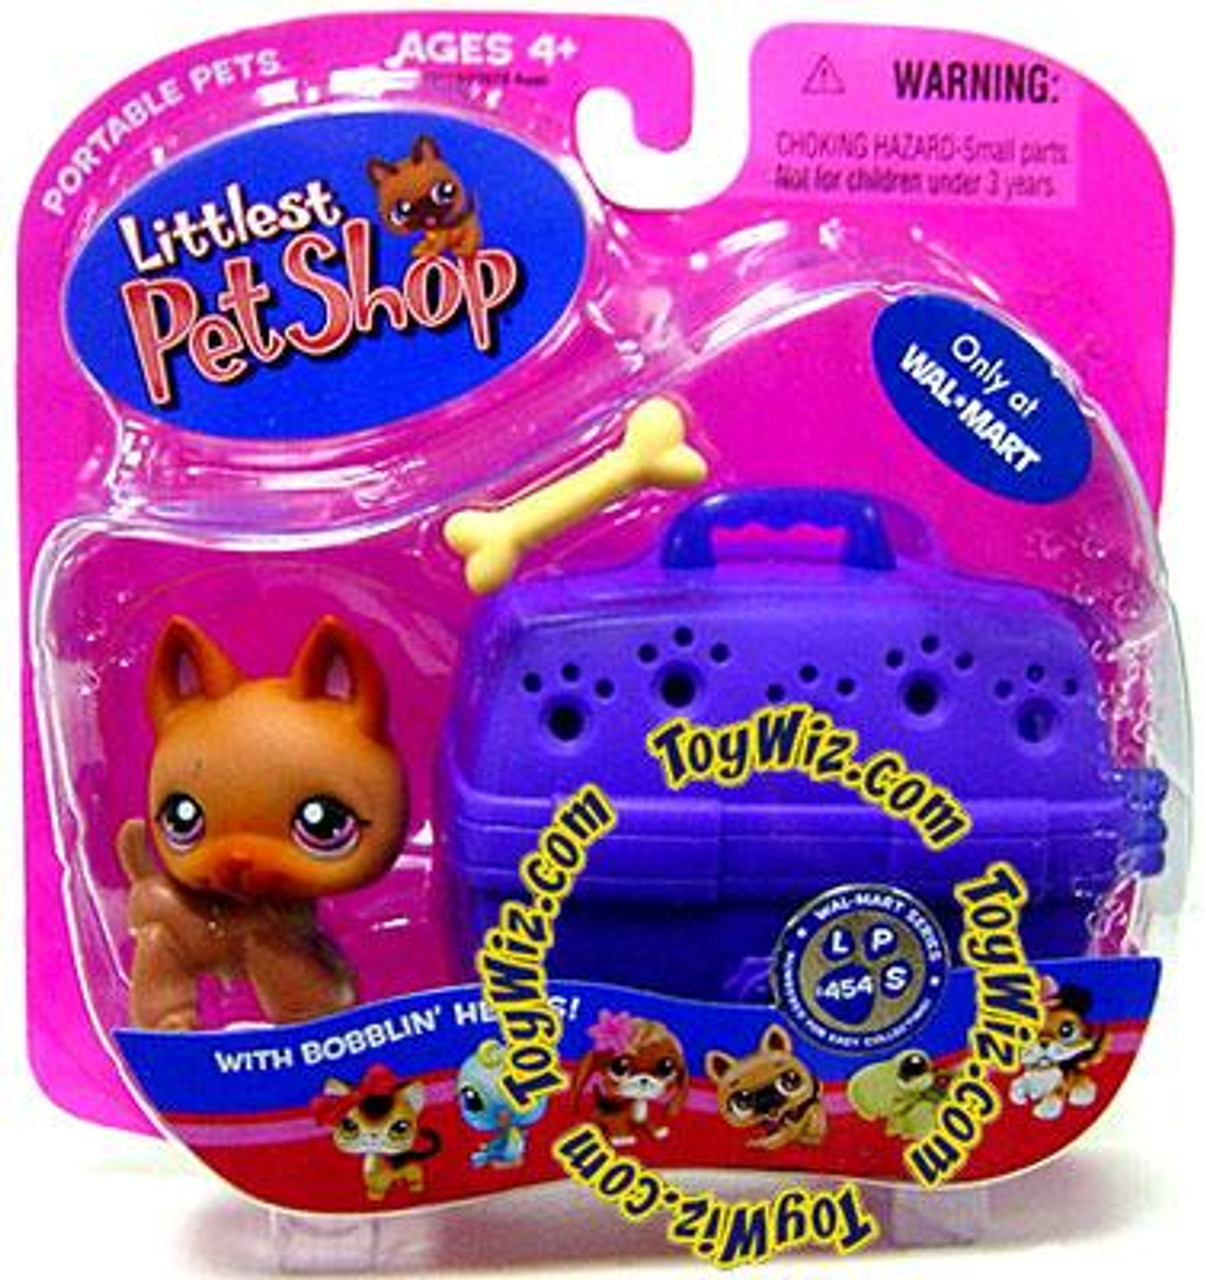 Littlest Pet Shop Portable Pets Baby German Shepherd Exclusive Figure #454 [With Bone]